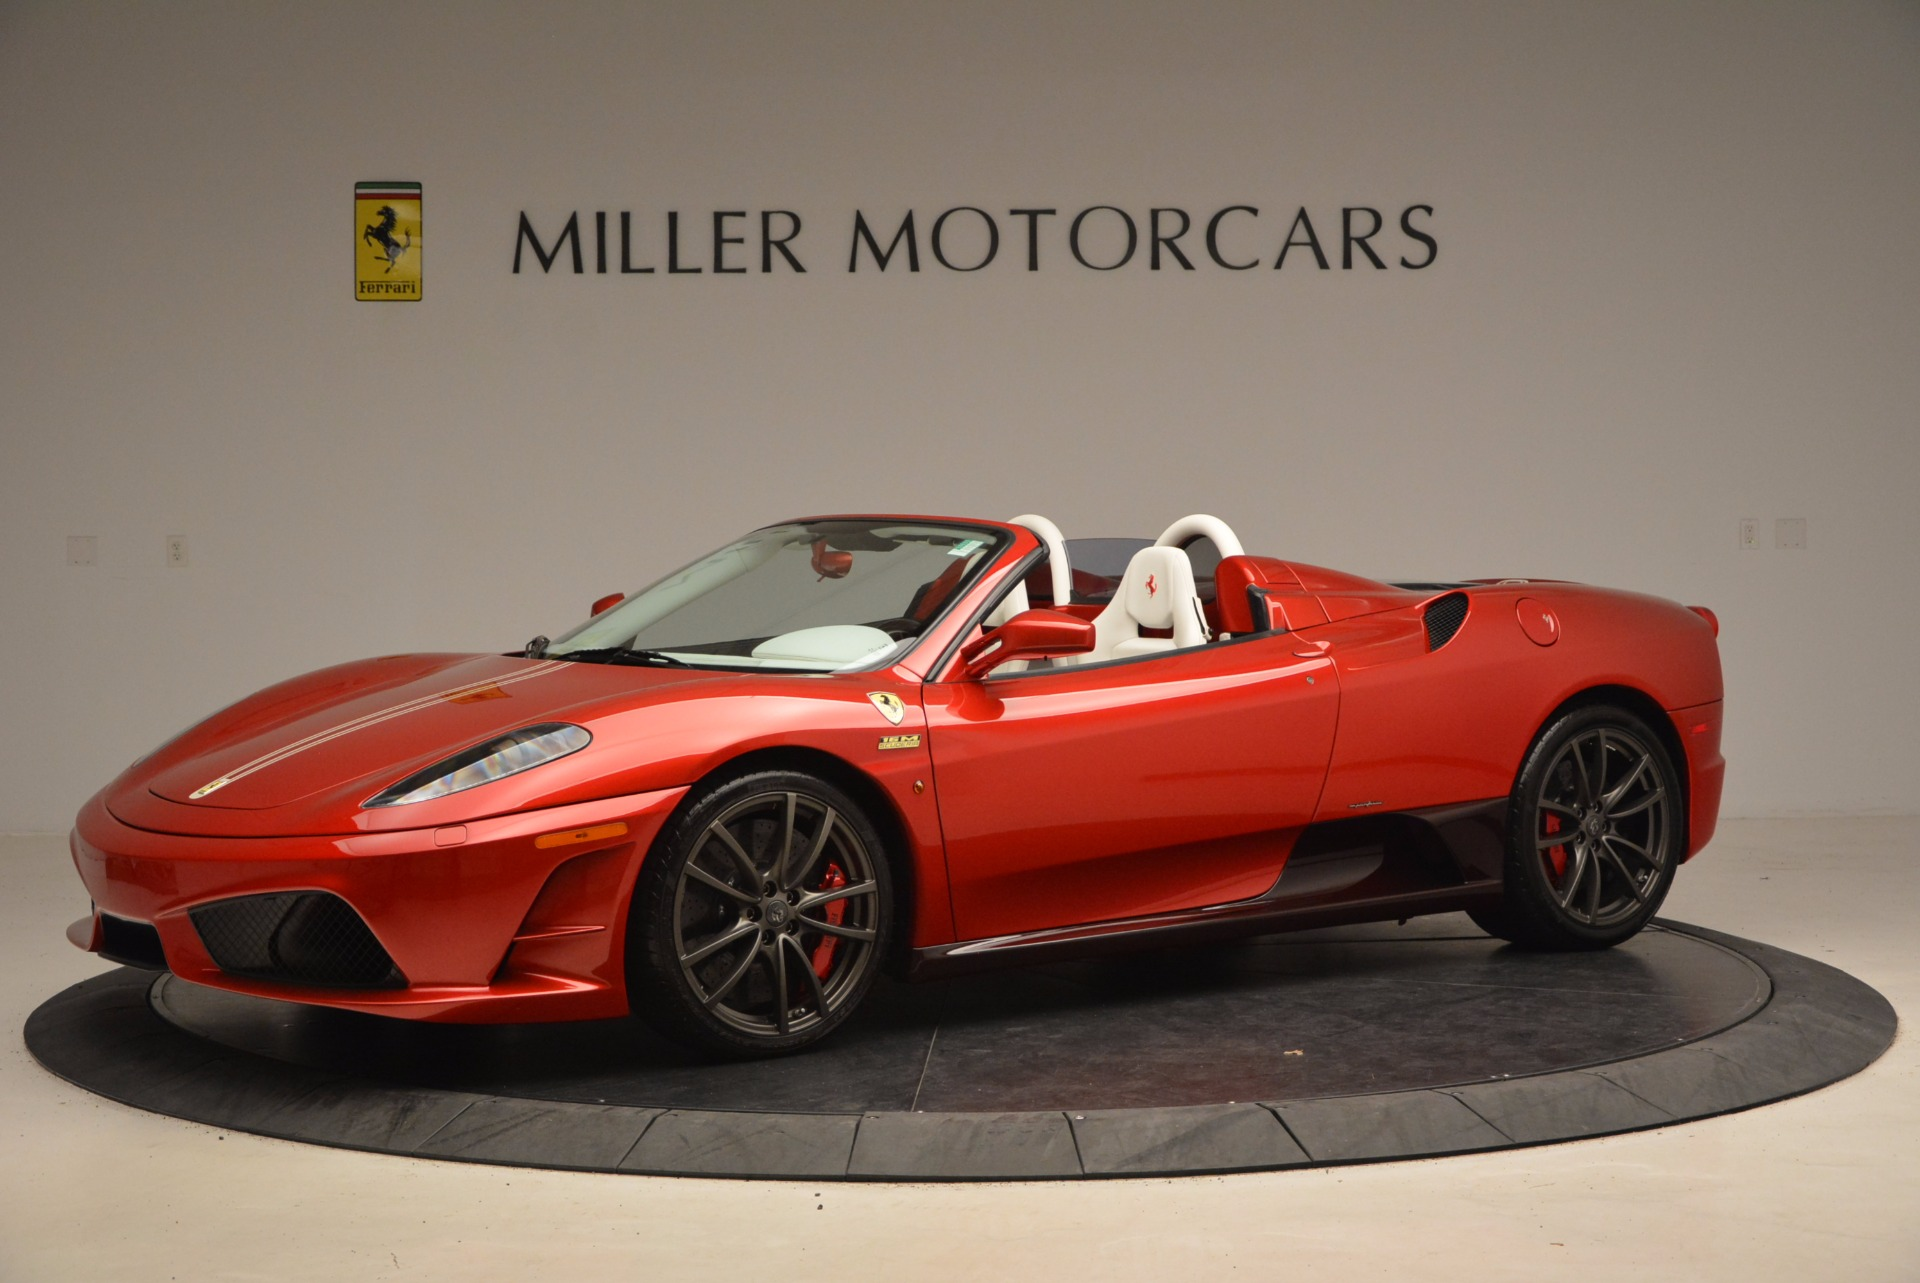 Used 2009 Ferrari F430 Scuderia 16M For Sale In Westport, CT 1398_p2